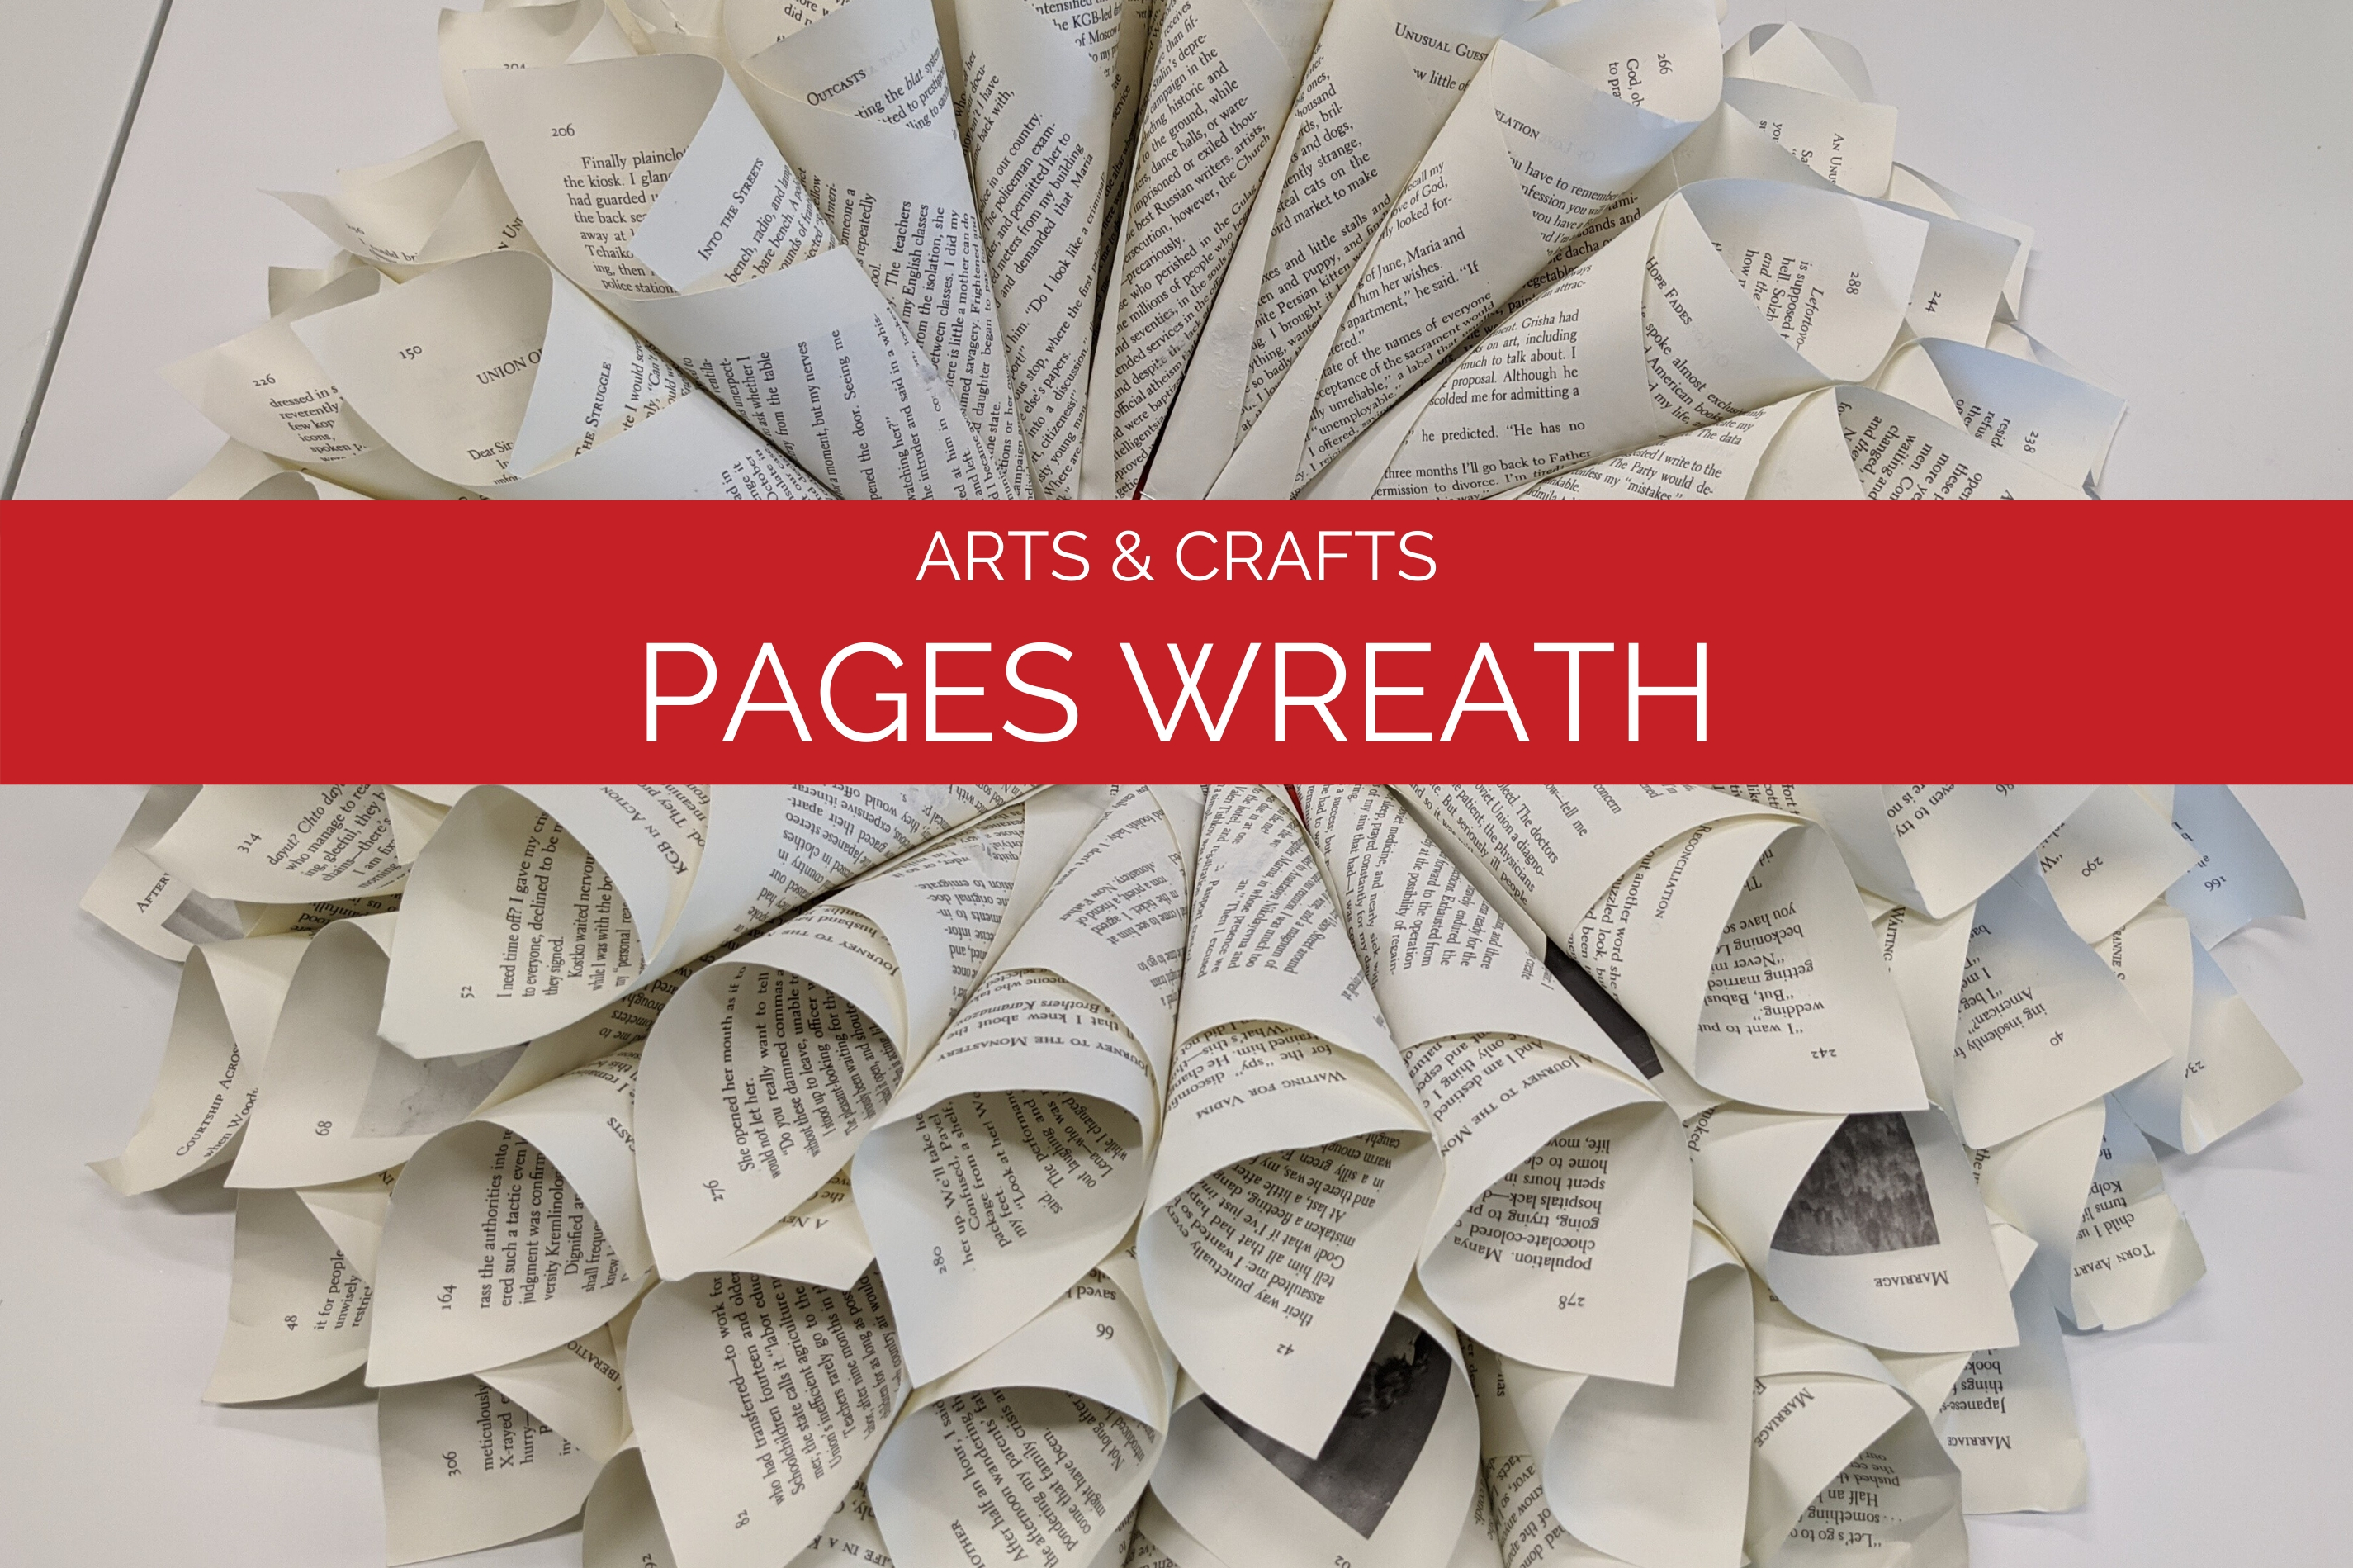 Arts and Crafts: Pages Wreath